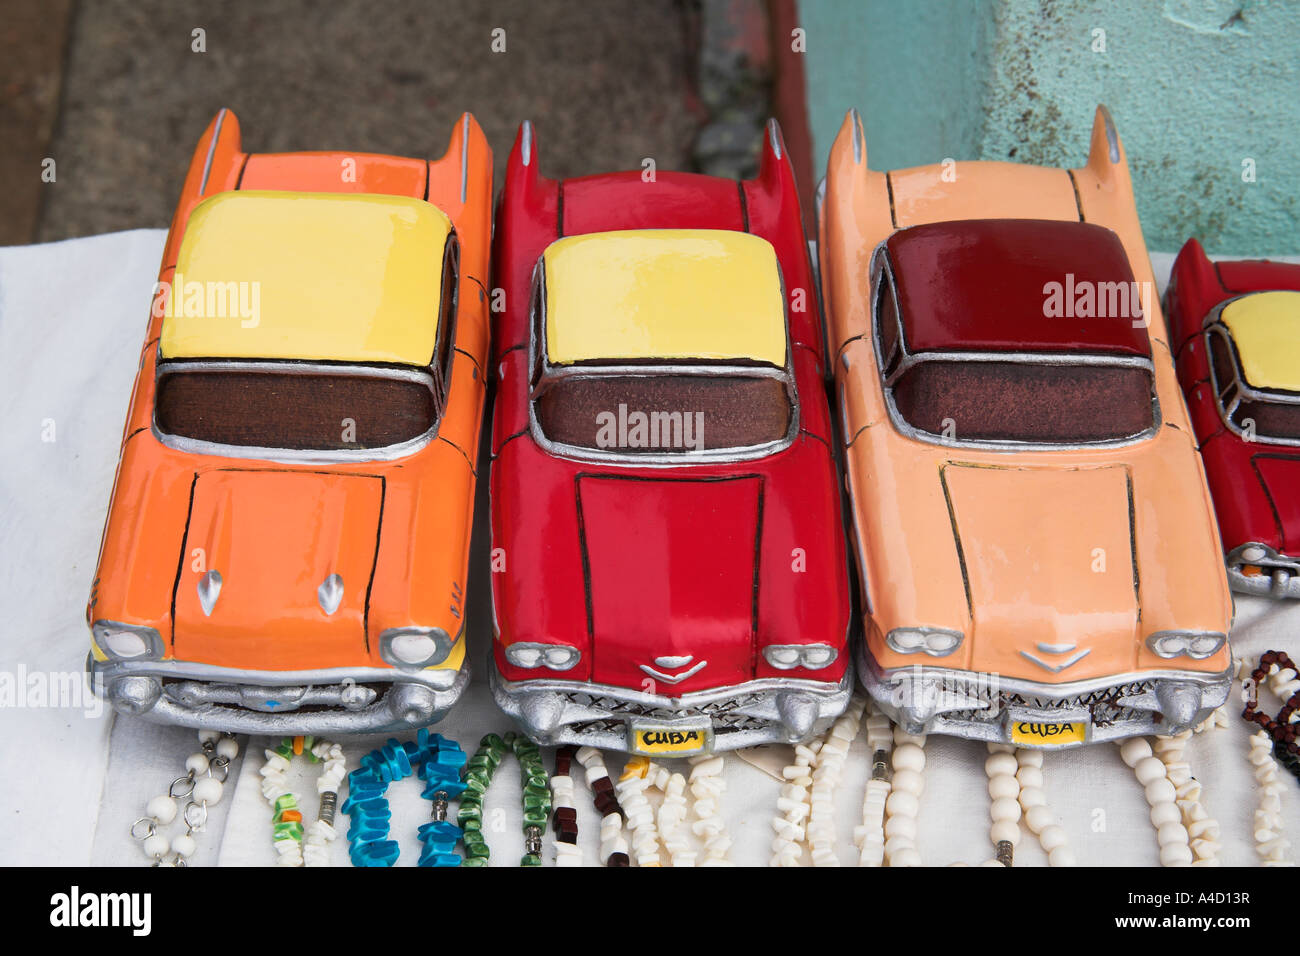 Three model classic American cars for sale in a market, Havana, Cuba ...